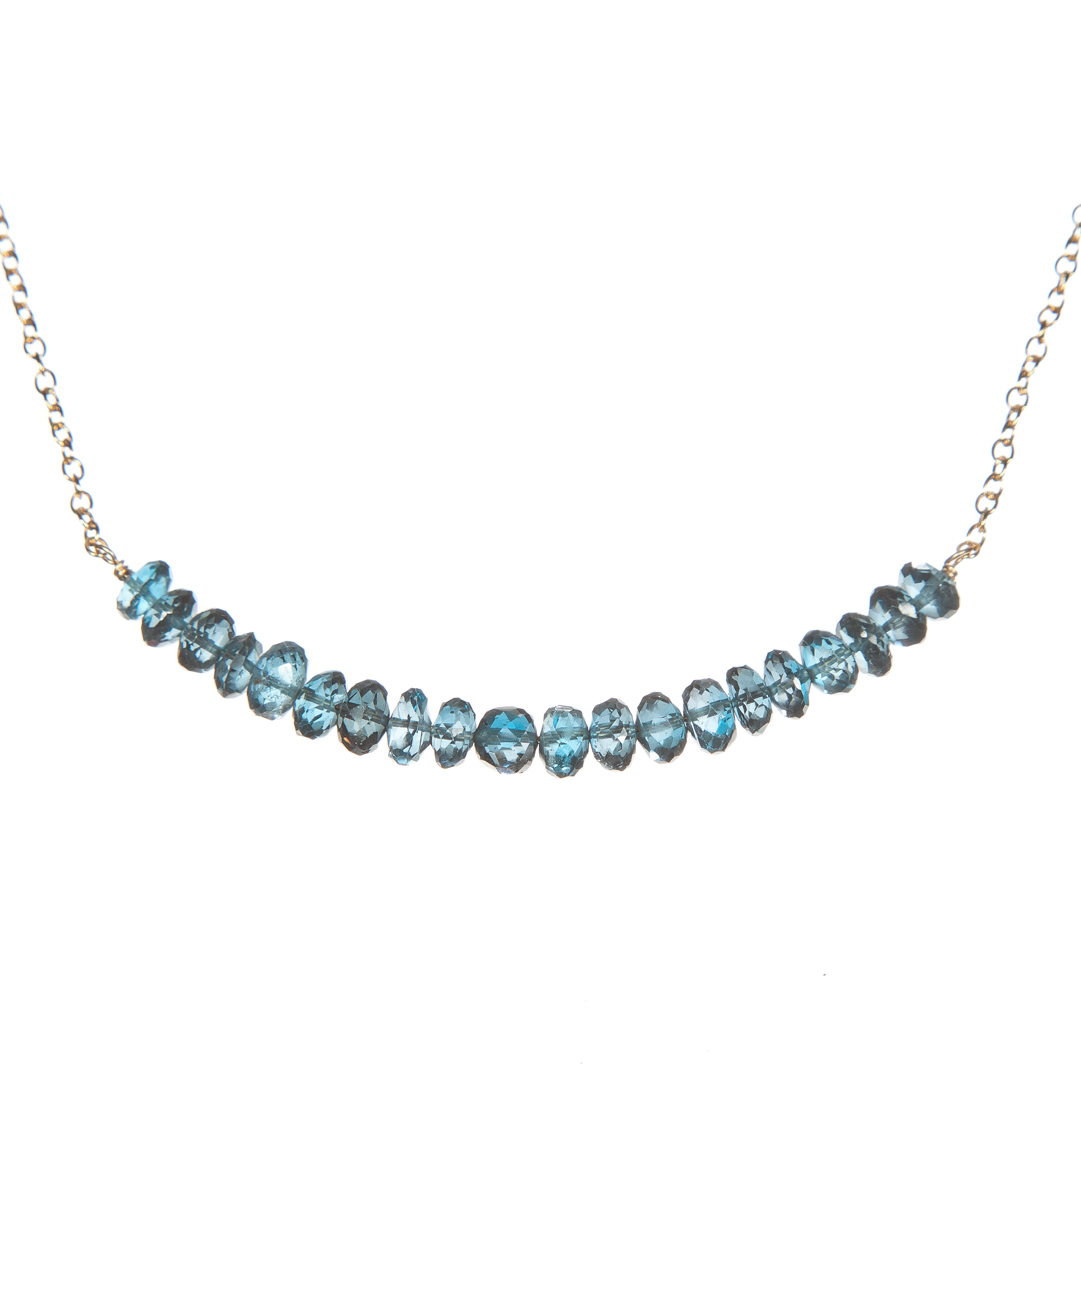 tangible blue white topaz shop necklace sku investments length gold